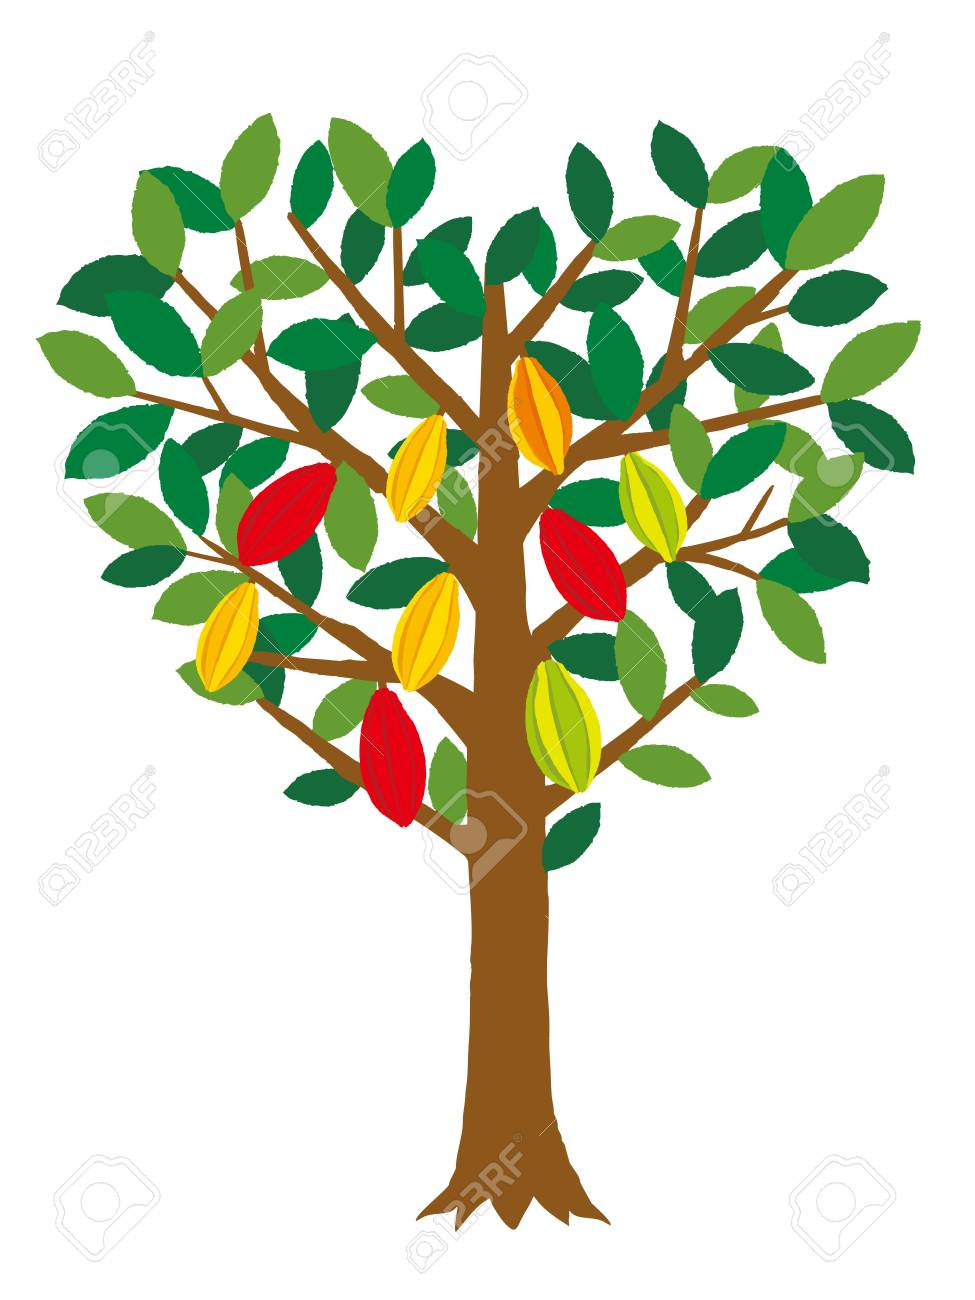 Heart Shaped Cacao Tree Royalty Free Cliparts Vectors And Stock Illustration Image 93215892